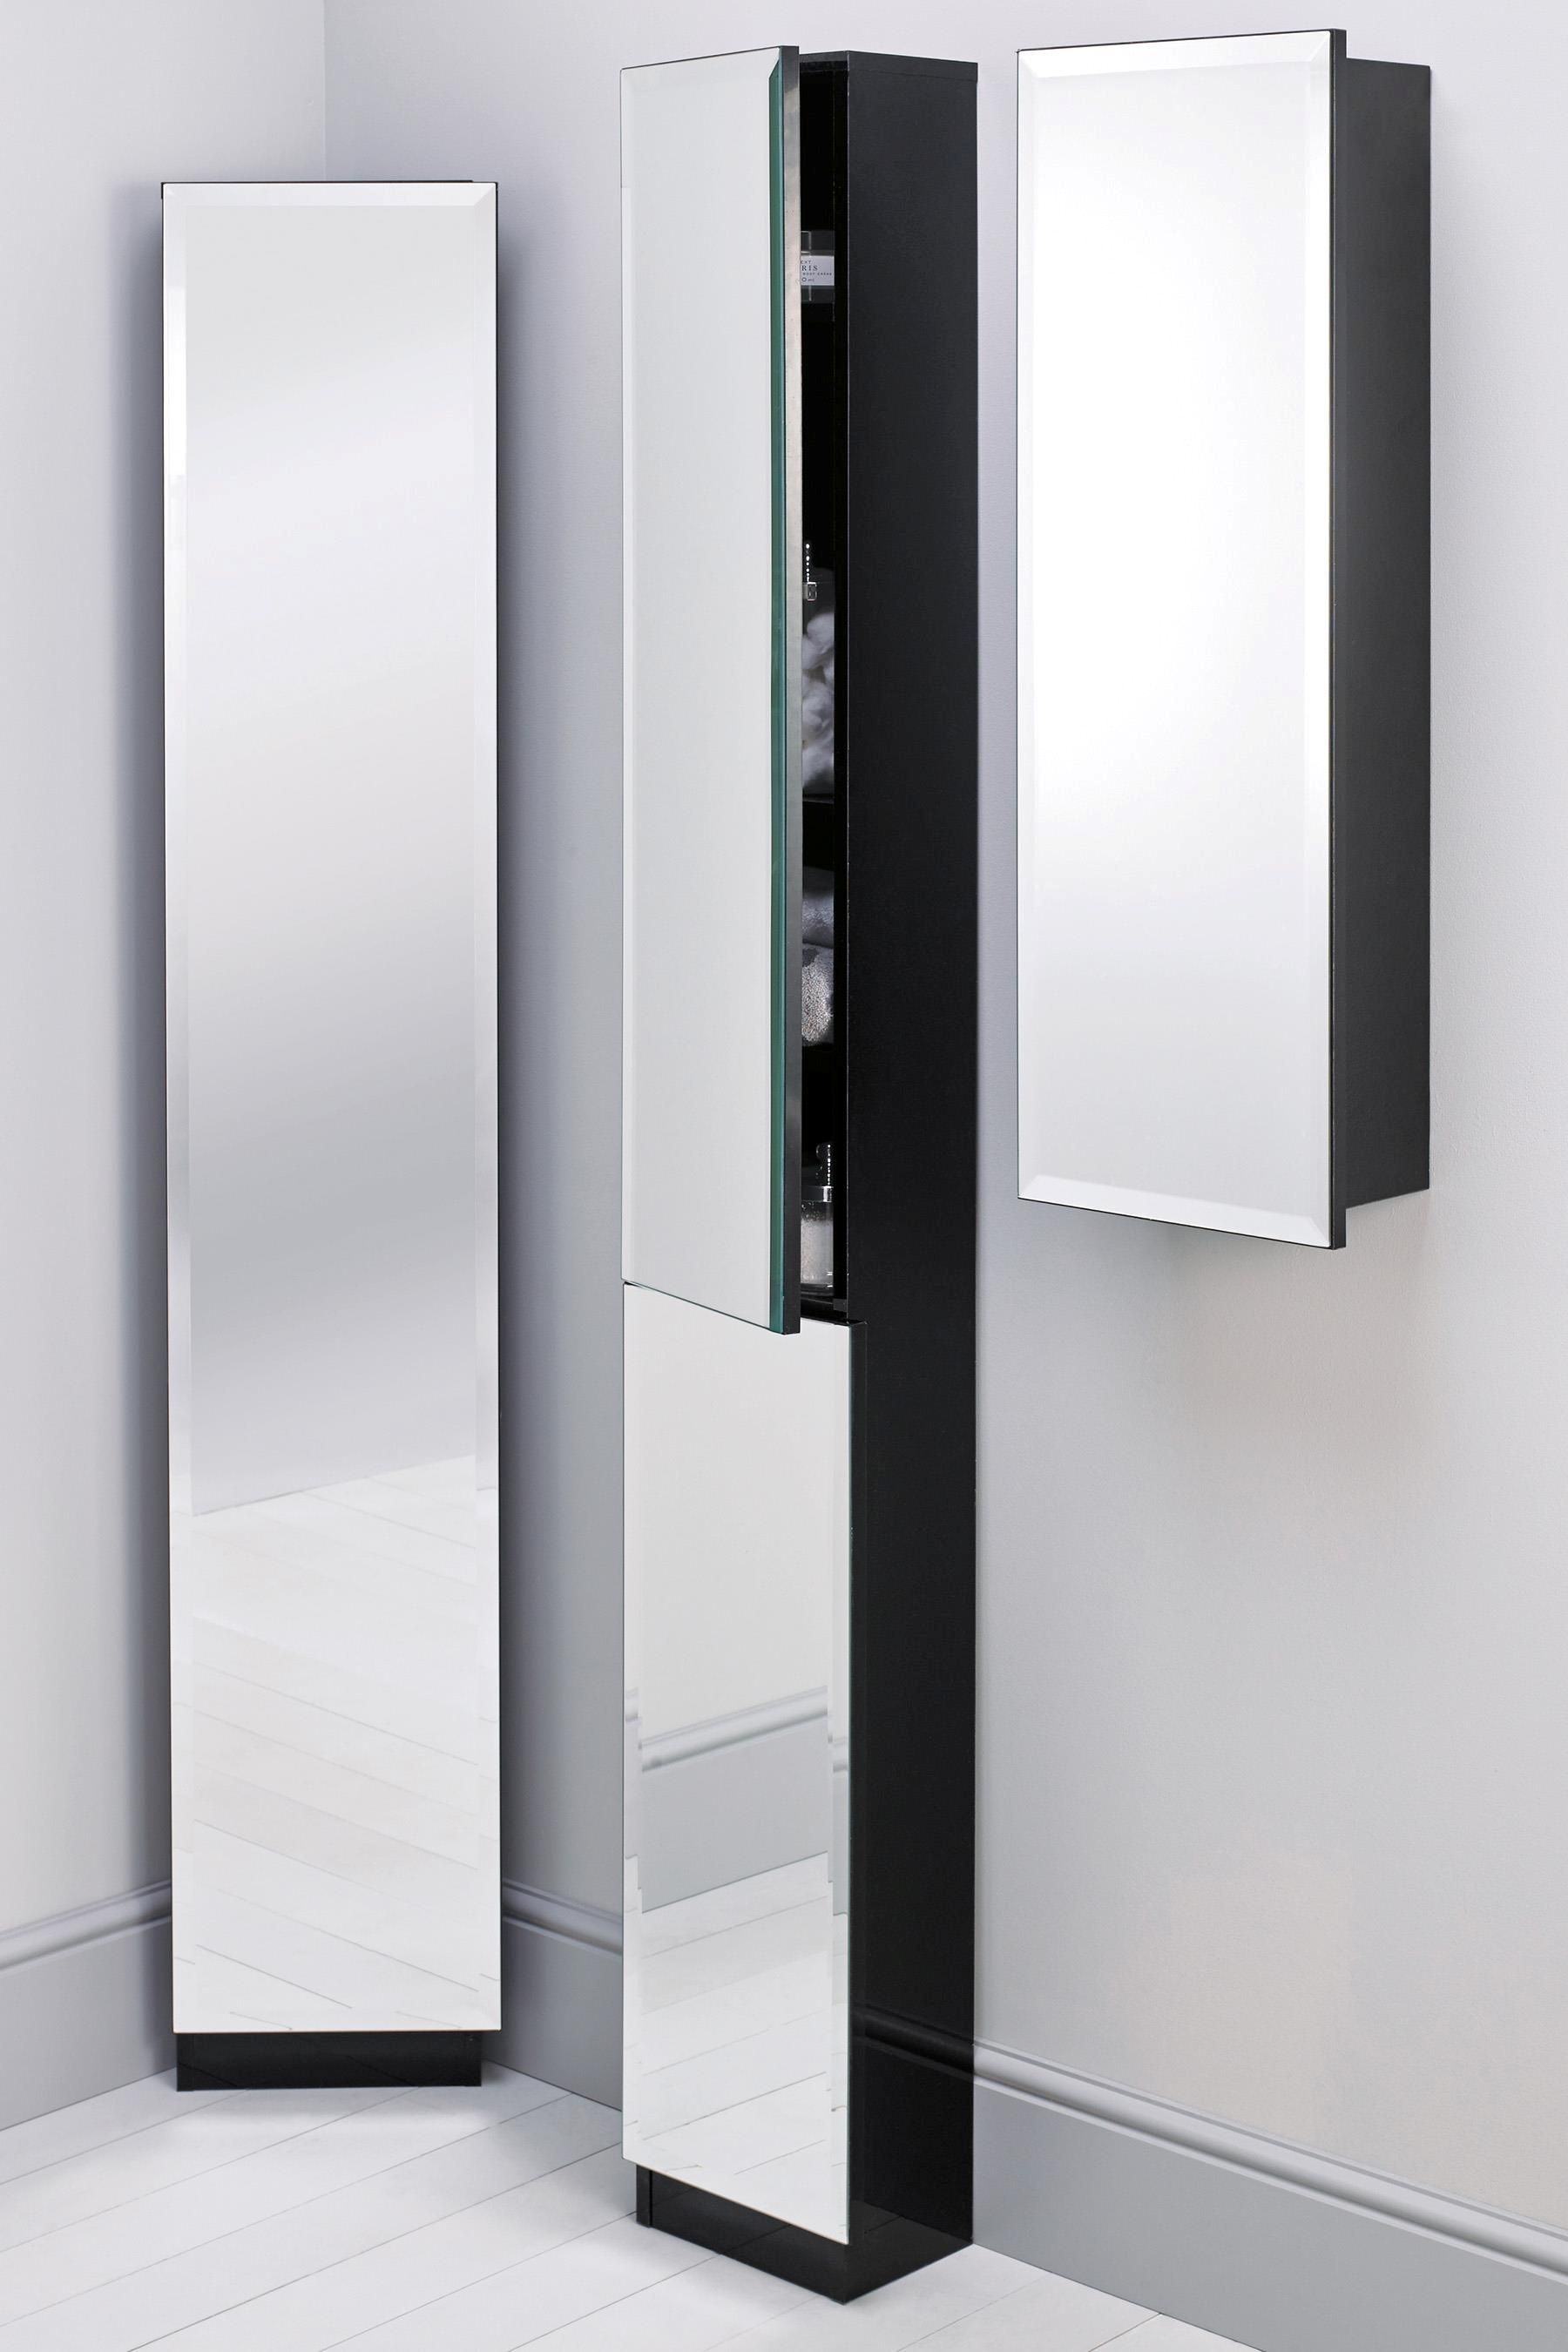 Mirror Storage Cabinet Bathroom Home Decor In 2019 Tall throughout sizing 1800 X 2700